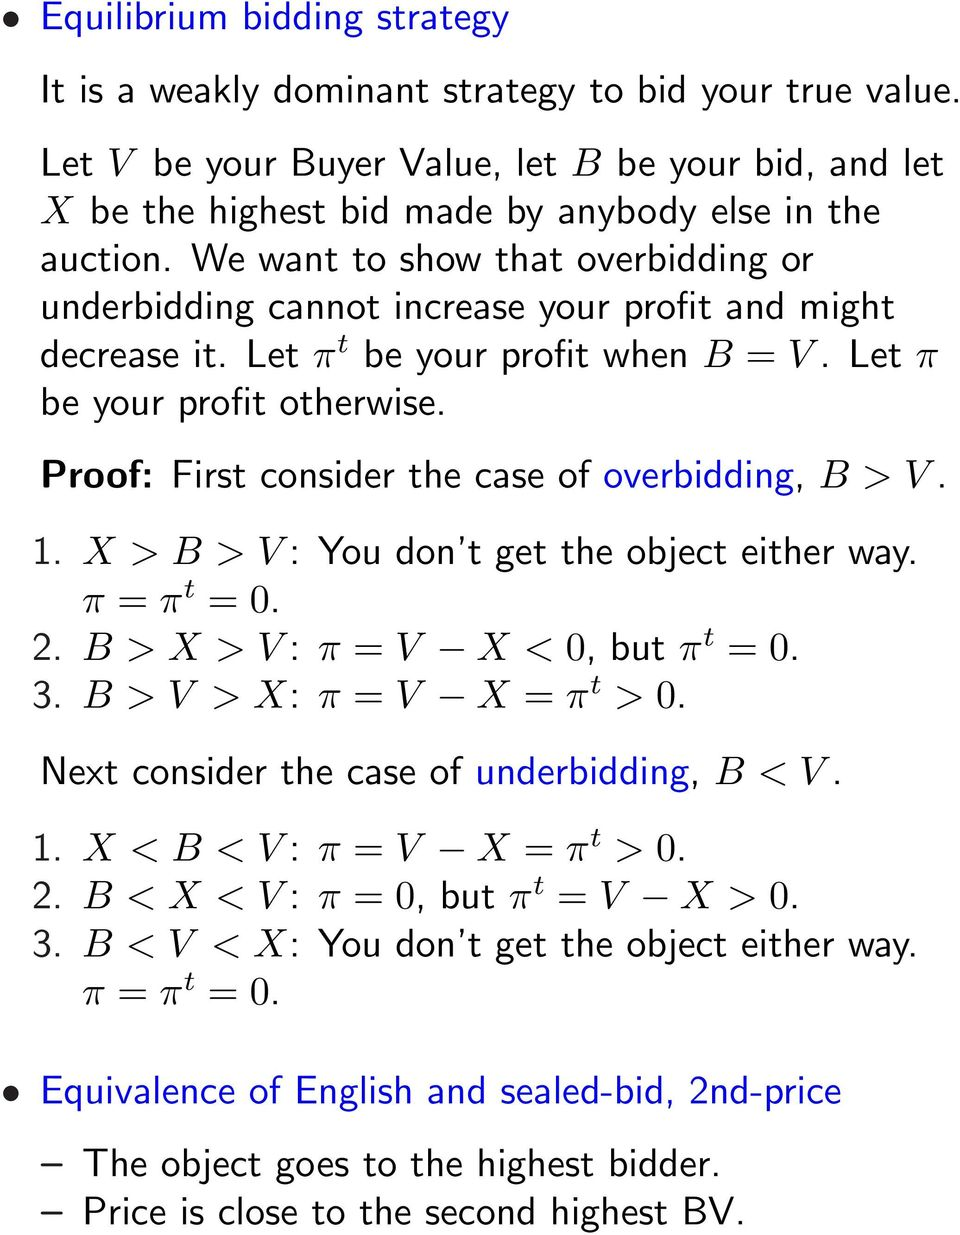 Proof: First consider the case of overbidding, B > V. 1. X > B > V : You don t get the object either way. π = π t = 0. 2. B > X > V : π = V X < 0, but π t = 0. 3. B > V > X: π = V X = π t > 0.